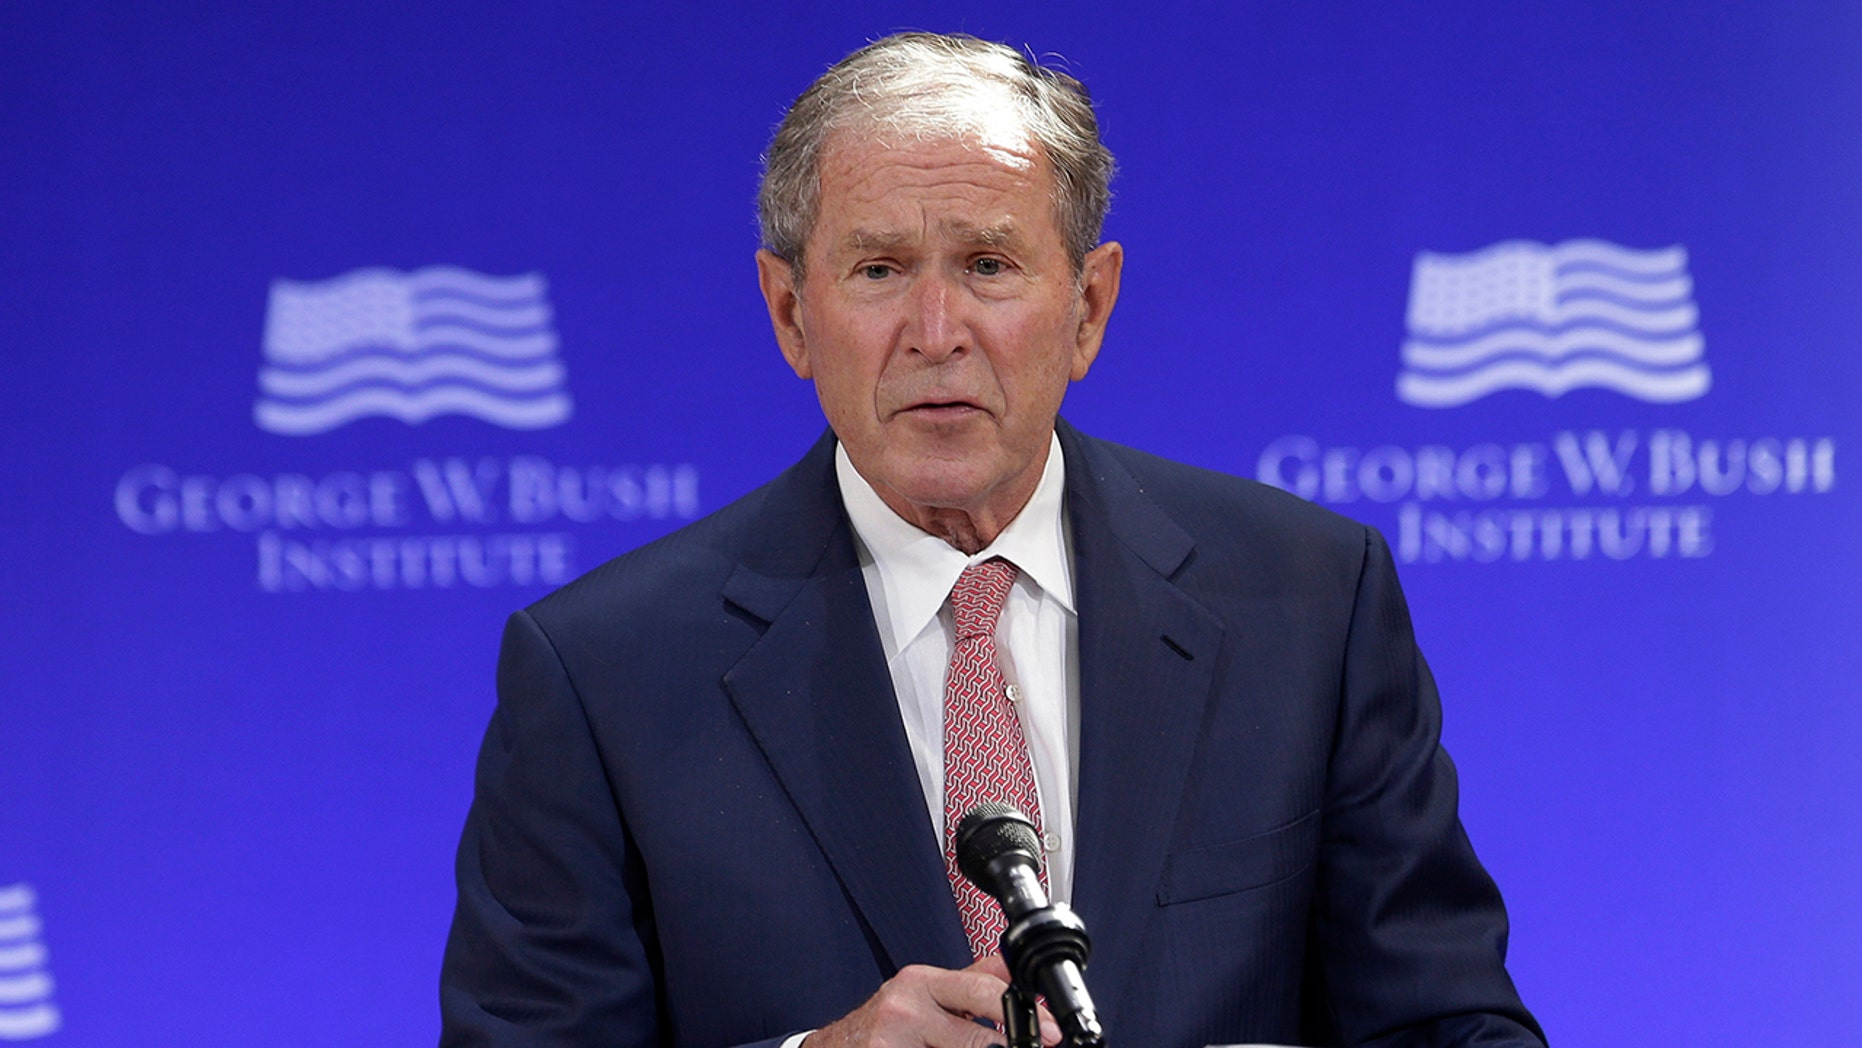 FILE- In this Thursday, Oct. 19, 2017 file photo, former U.S. President George W. Bush speaks at a forum sponsored by the George W. Bush Institute in New York.